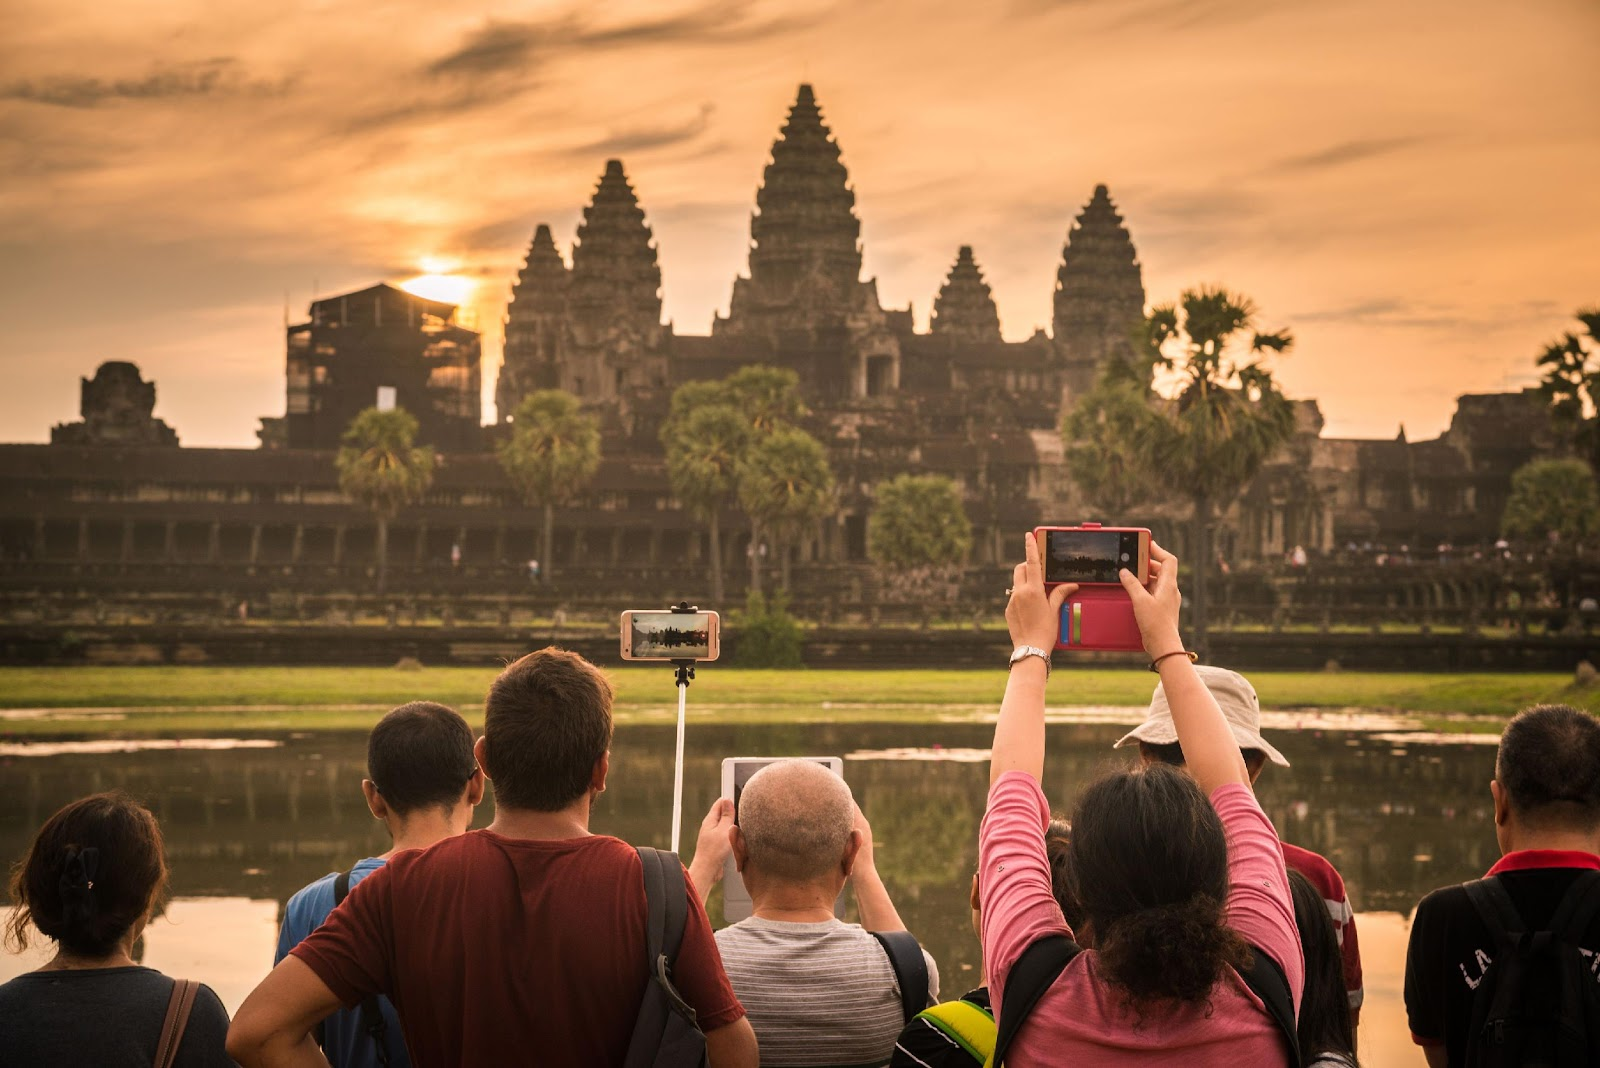 Macintosh HD:Users:christinemassey:Desktop:angkor-wat-the-iconic-landmark-and-the-most-tourist-destination-in-siem-reap--cambodia--637064534-5add0c323128340036042dde.jpg